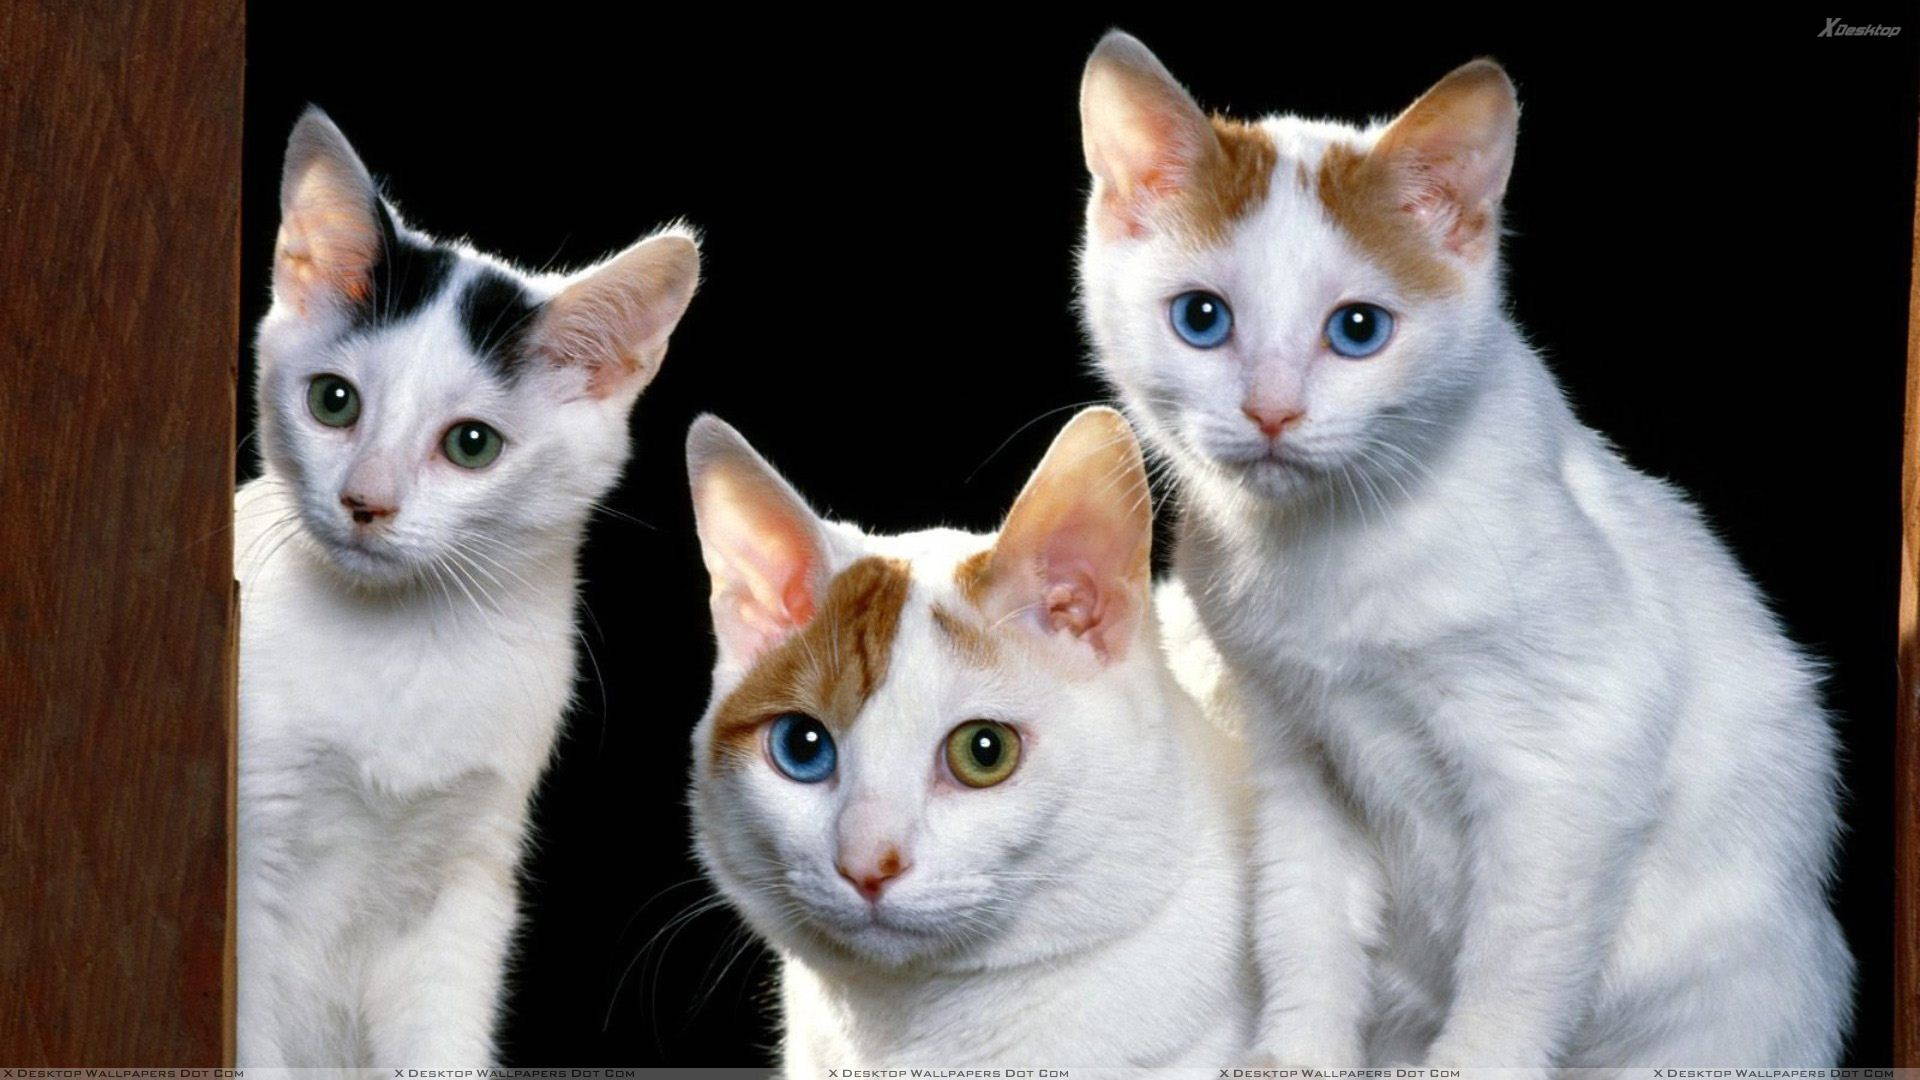 Three white cats looking sweet wallpaper The three cats